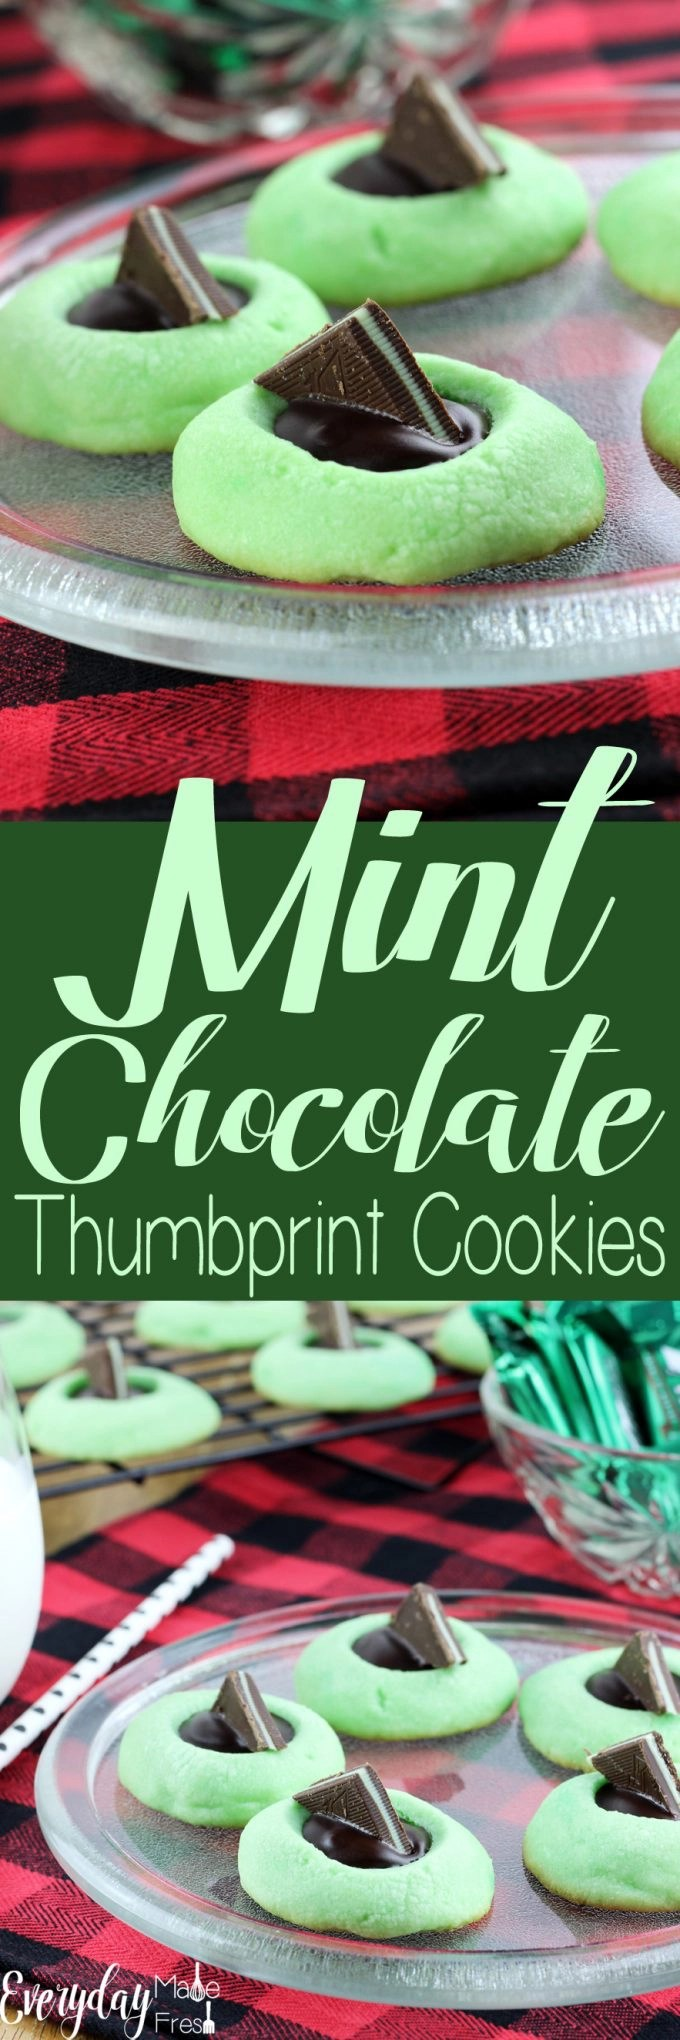 Mint and Chocolate are the perfect pair when it comes to holiday duos. These Mint Chocolate Thumbprint Cookies are tender, buttery, minty, and have a dark chocolate punch!   EverydayMadeFresh.com